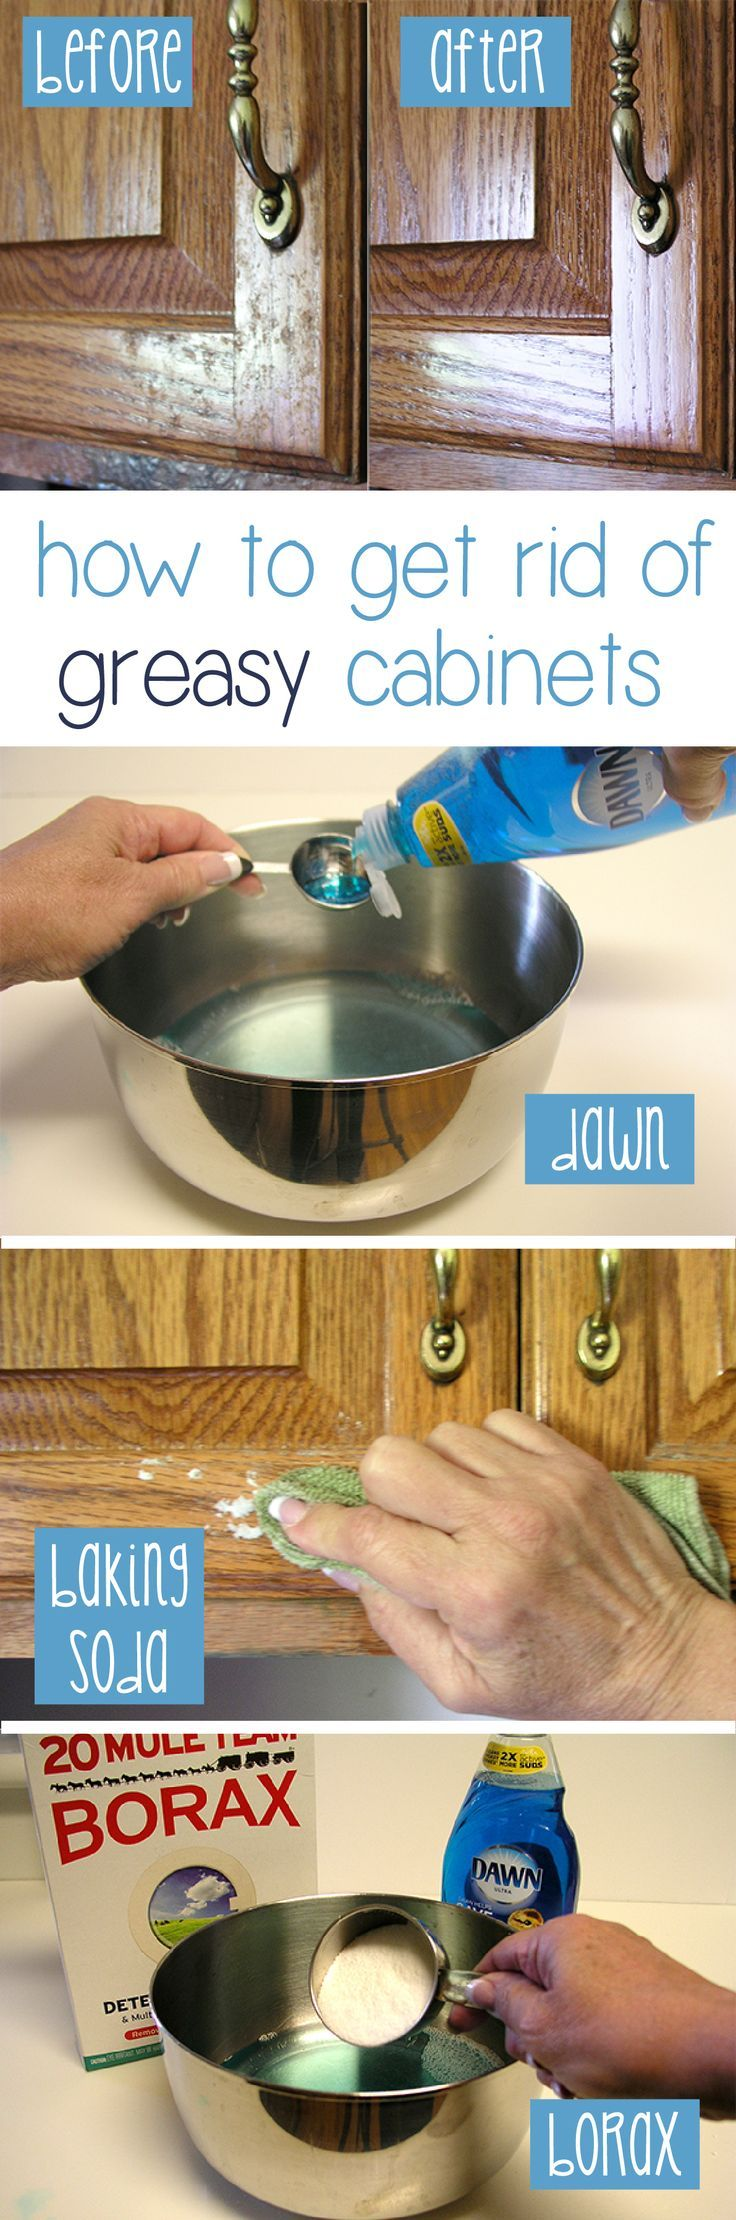 best way to remove grease from kitchen cabinets aid stand mixers how clean cabinet doors nifty pinterest via ehow